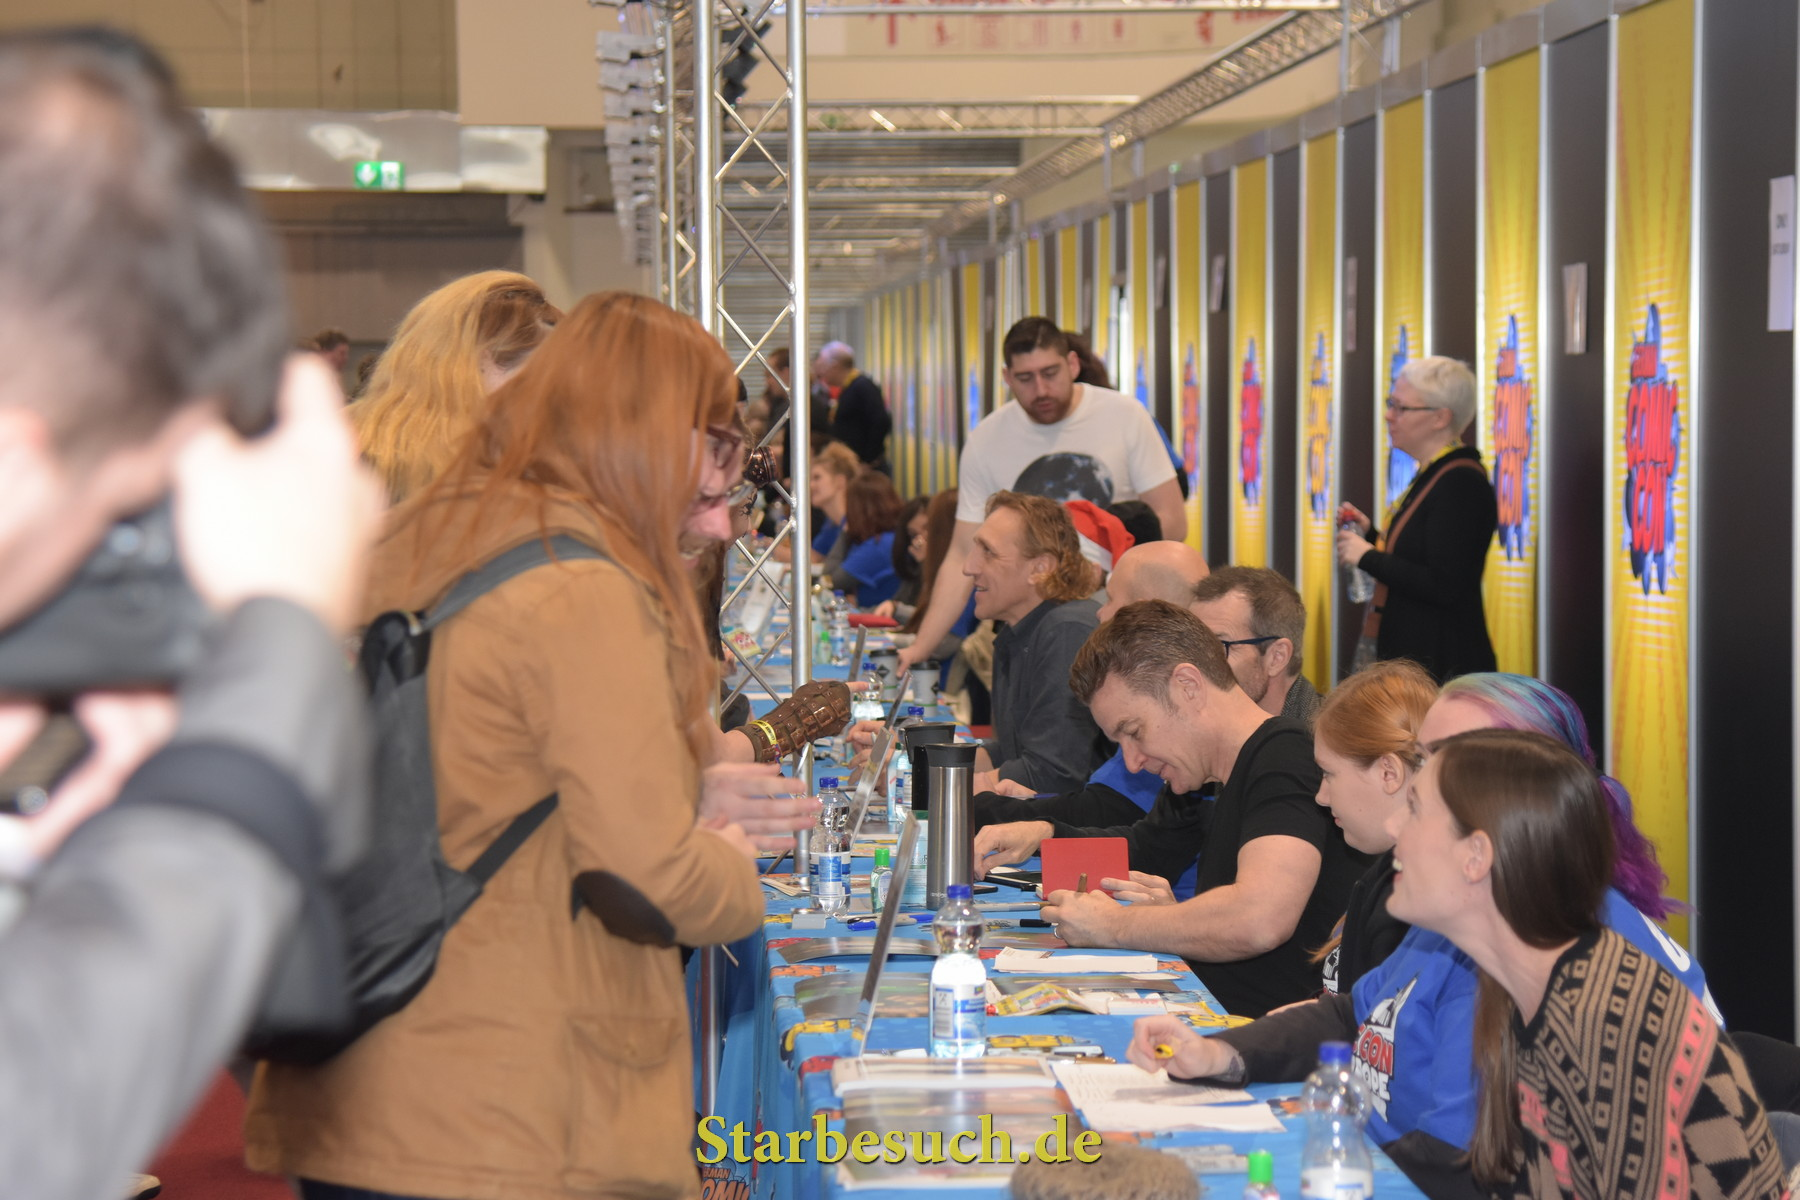 Dortmund, Germany - December 9th 2017: Actors Signing Area at German Comic Con Dortmund. More than 30 celebrities attended the event to meet their fans, sign autographs and do photoshoots.